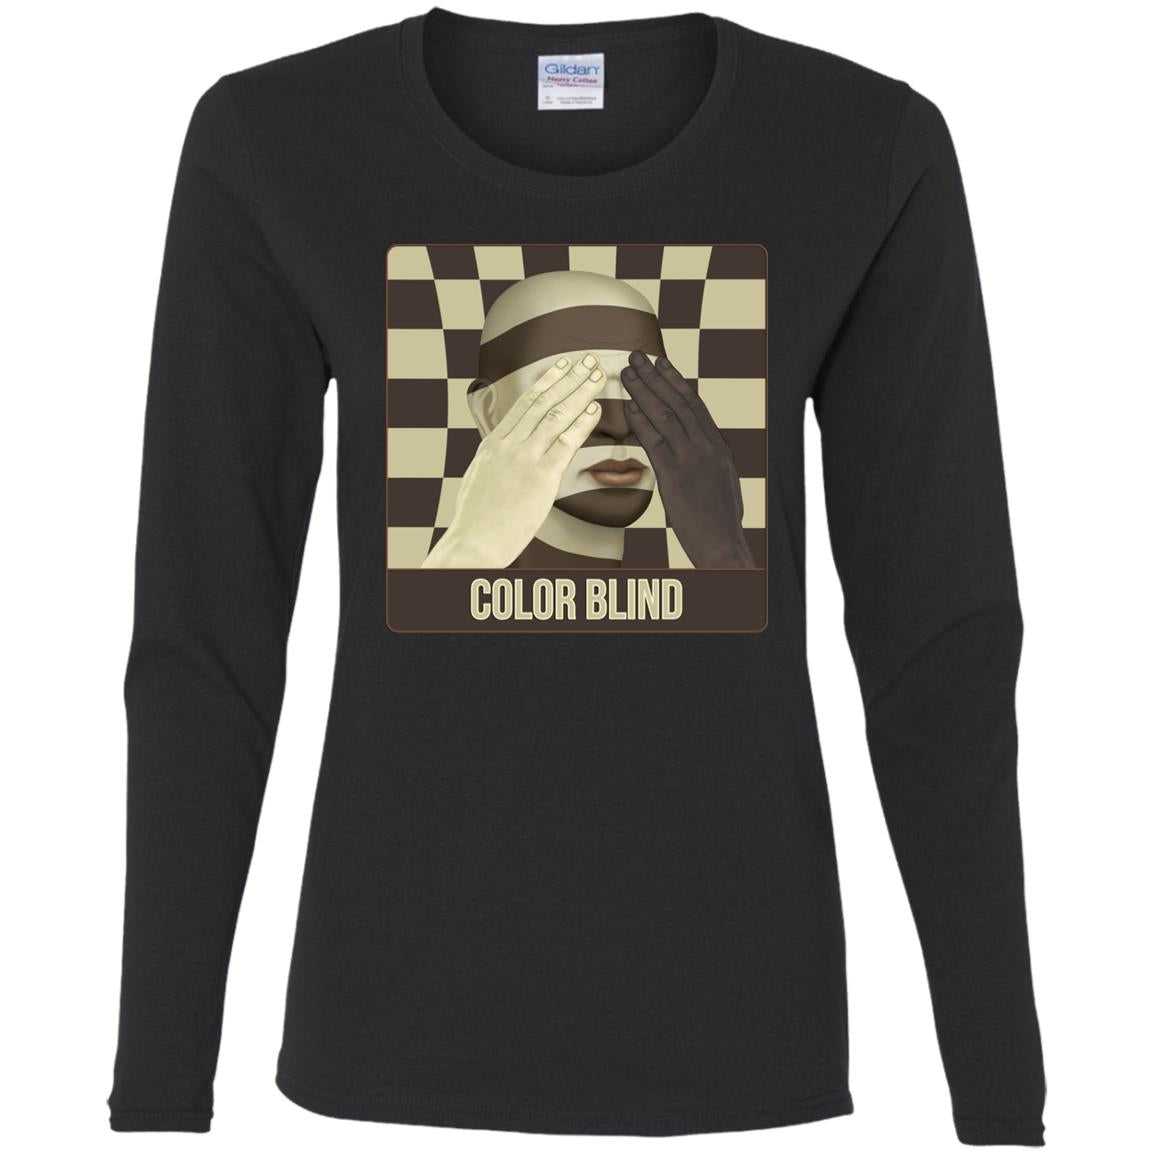 Color Blind - Women's Long Sleeve Tee